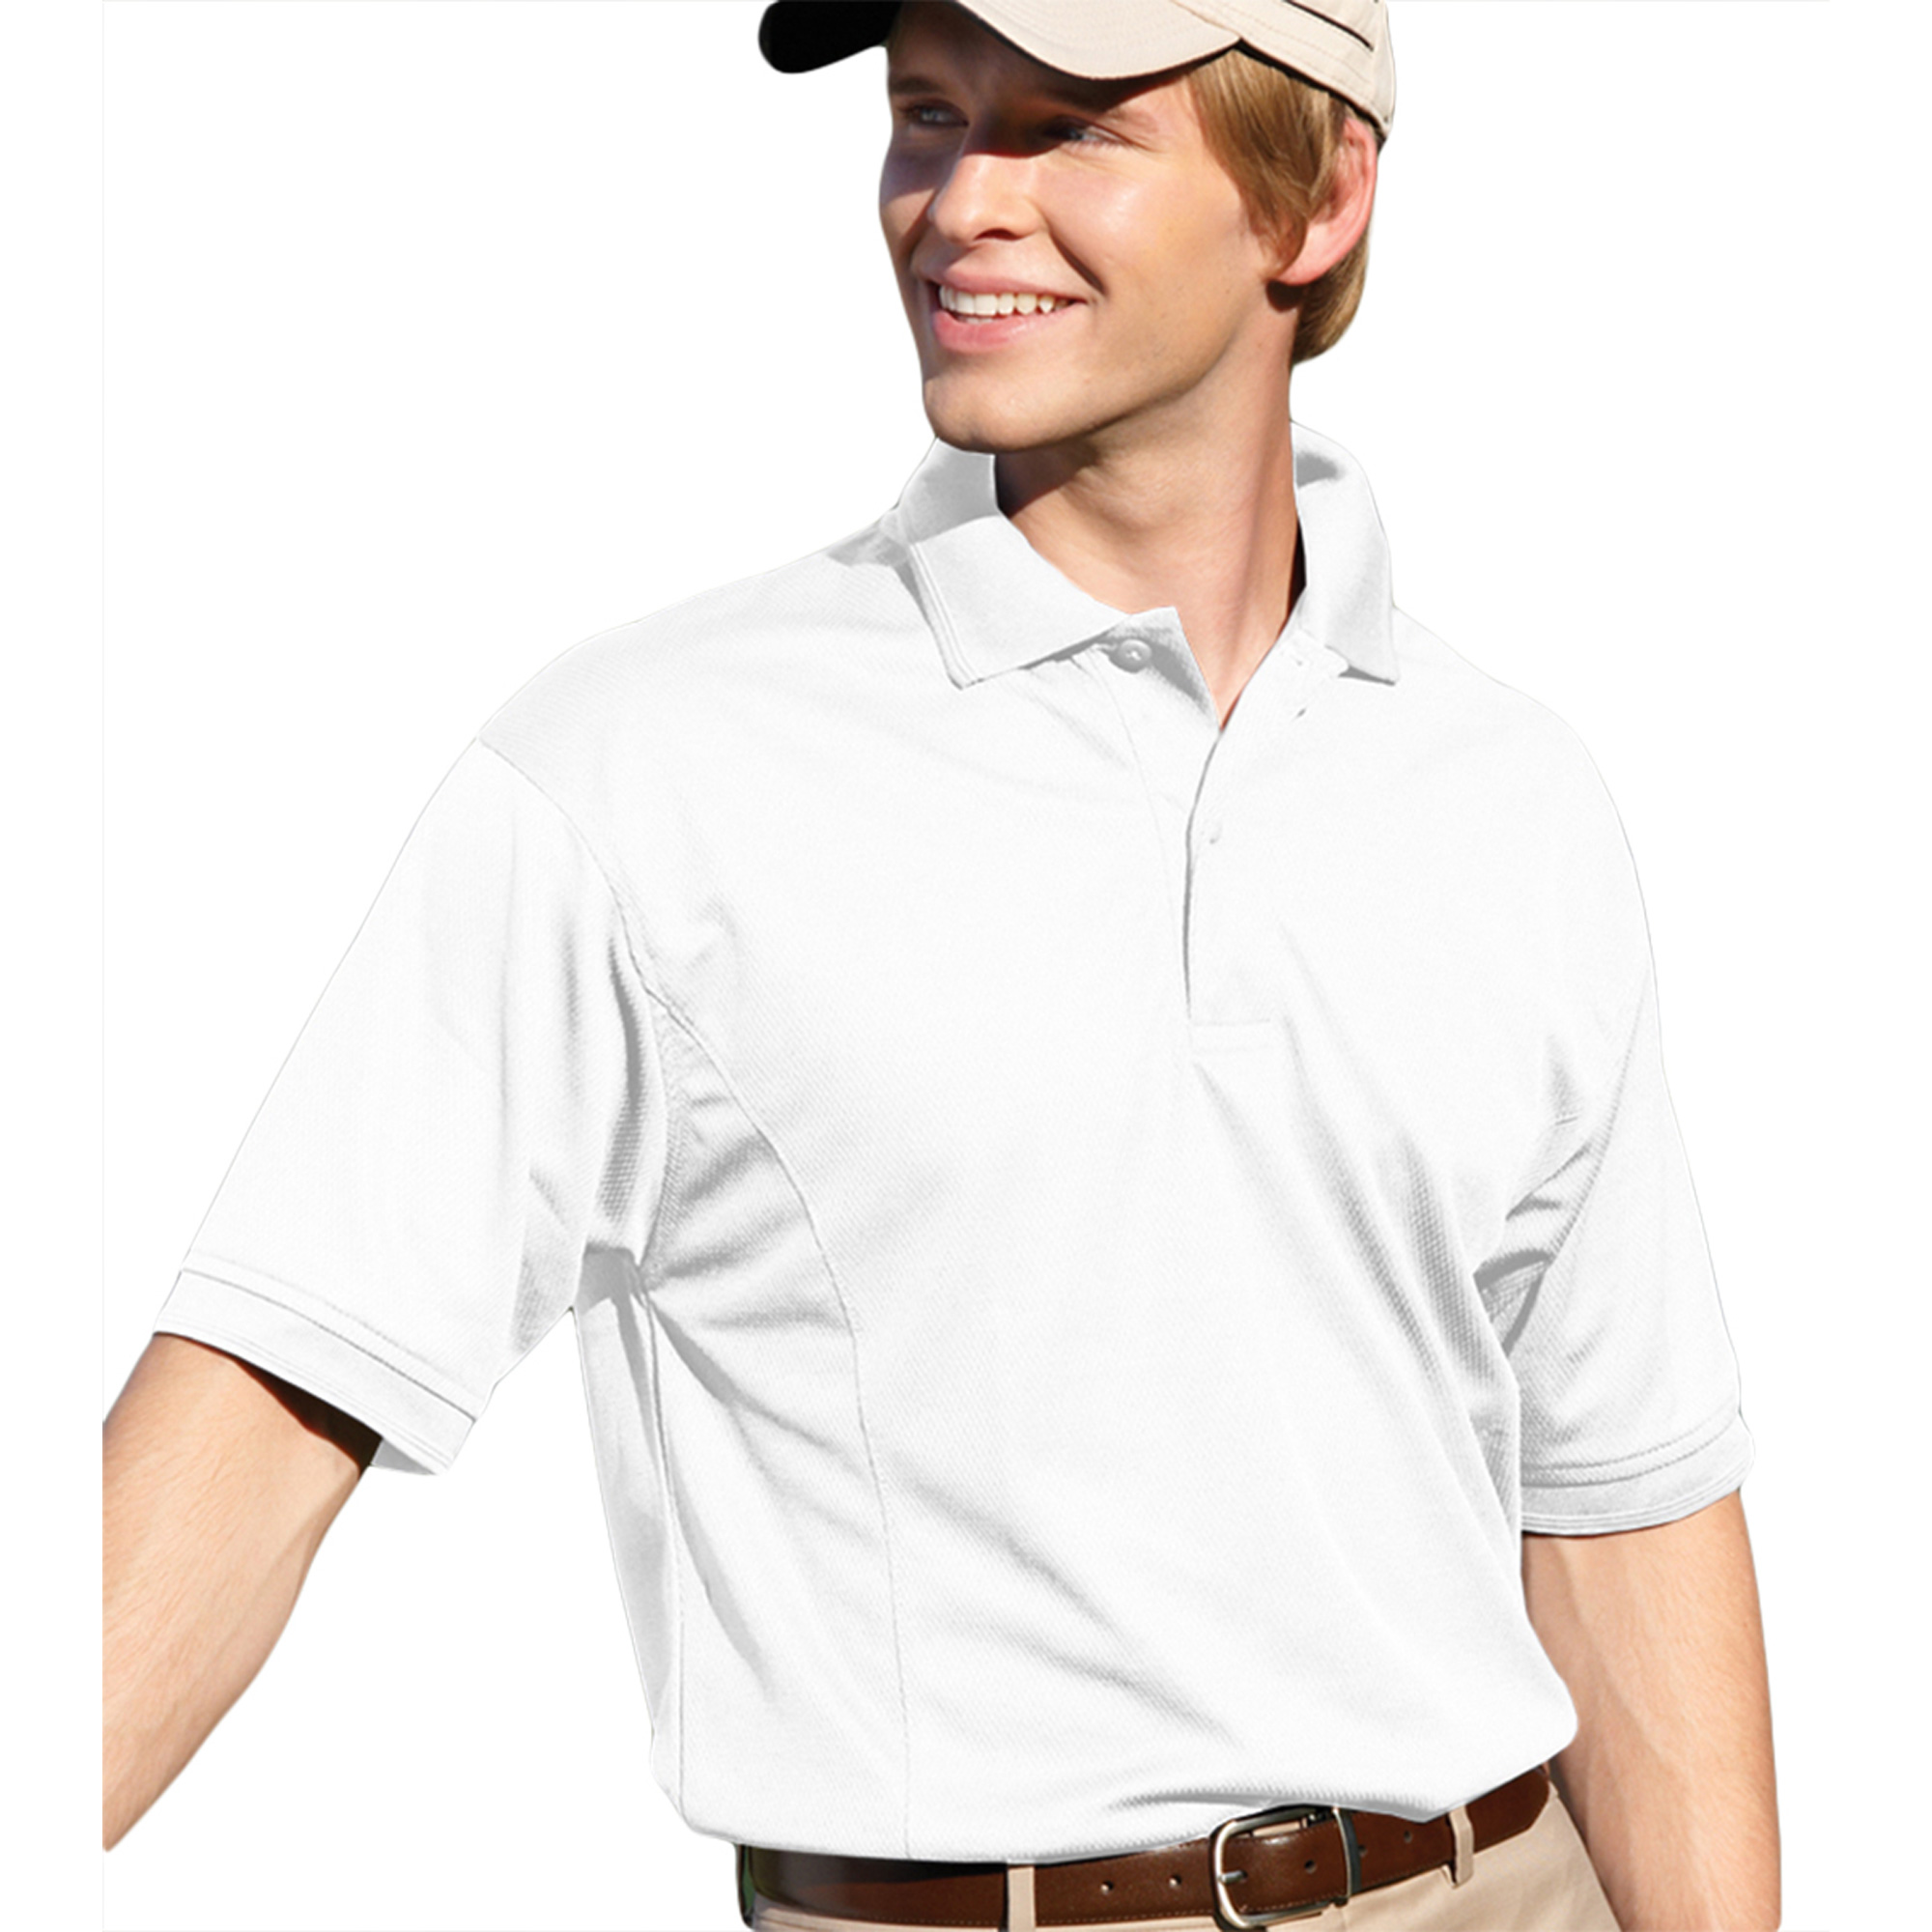 00820599180712 MENS PERFORMANCE GOLF SHIRT 2800 APPLE 2XL